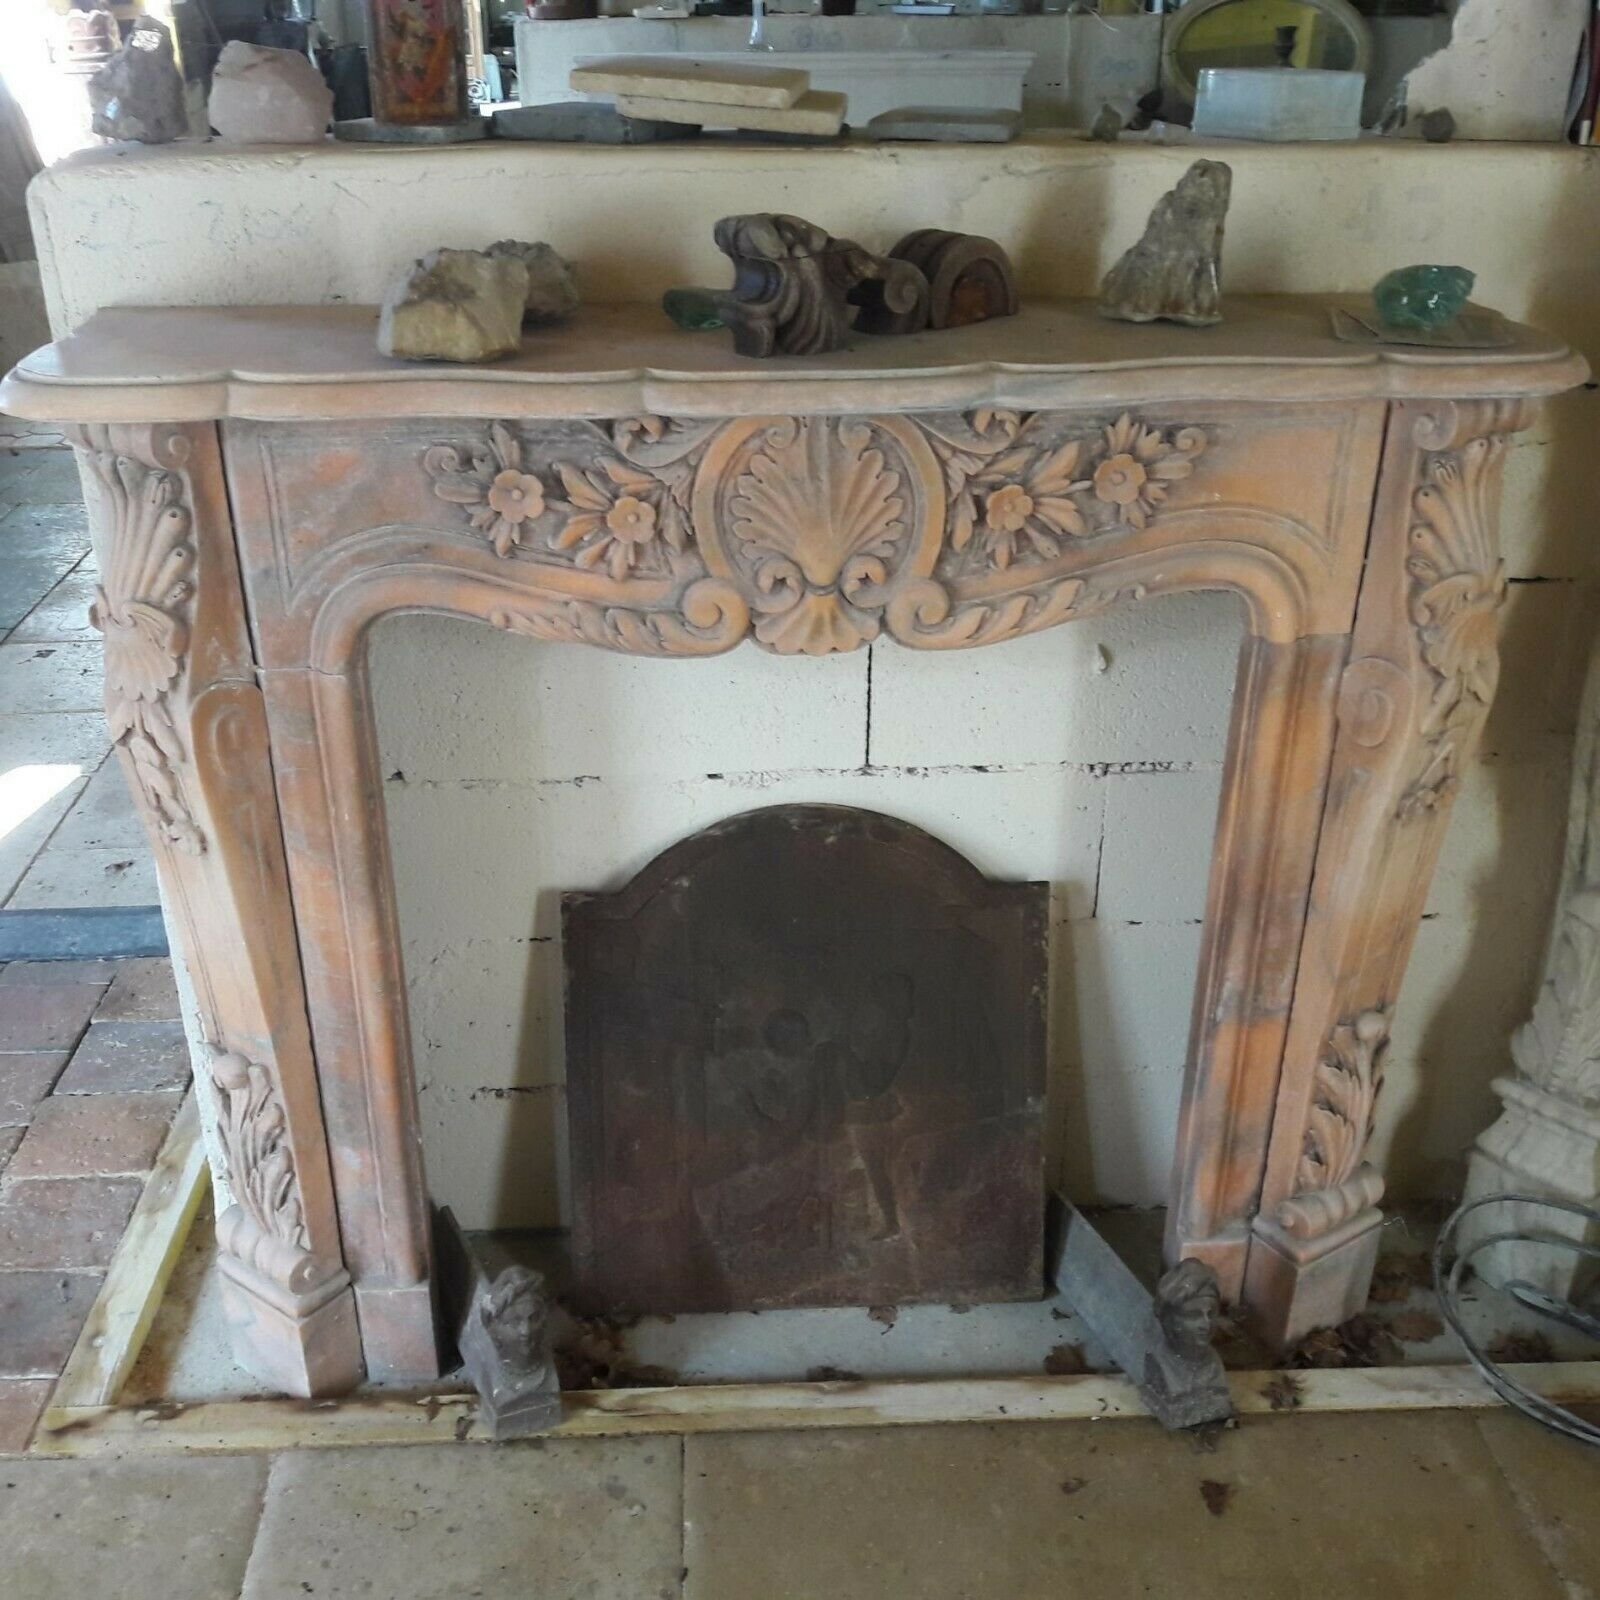 Cheminée Style Empire Fireplace In Rosy Marble Empire Style Ornamented Richly In The Lintel And Jambs Curved Jambs La Pierre De Jadis